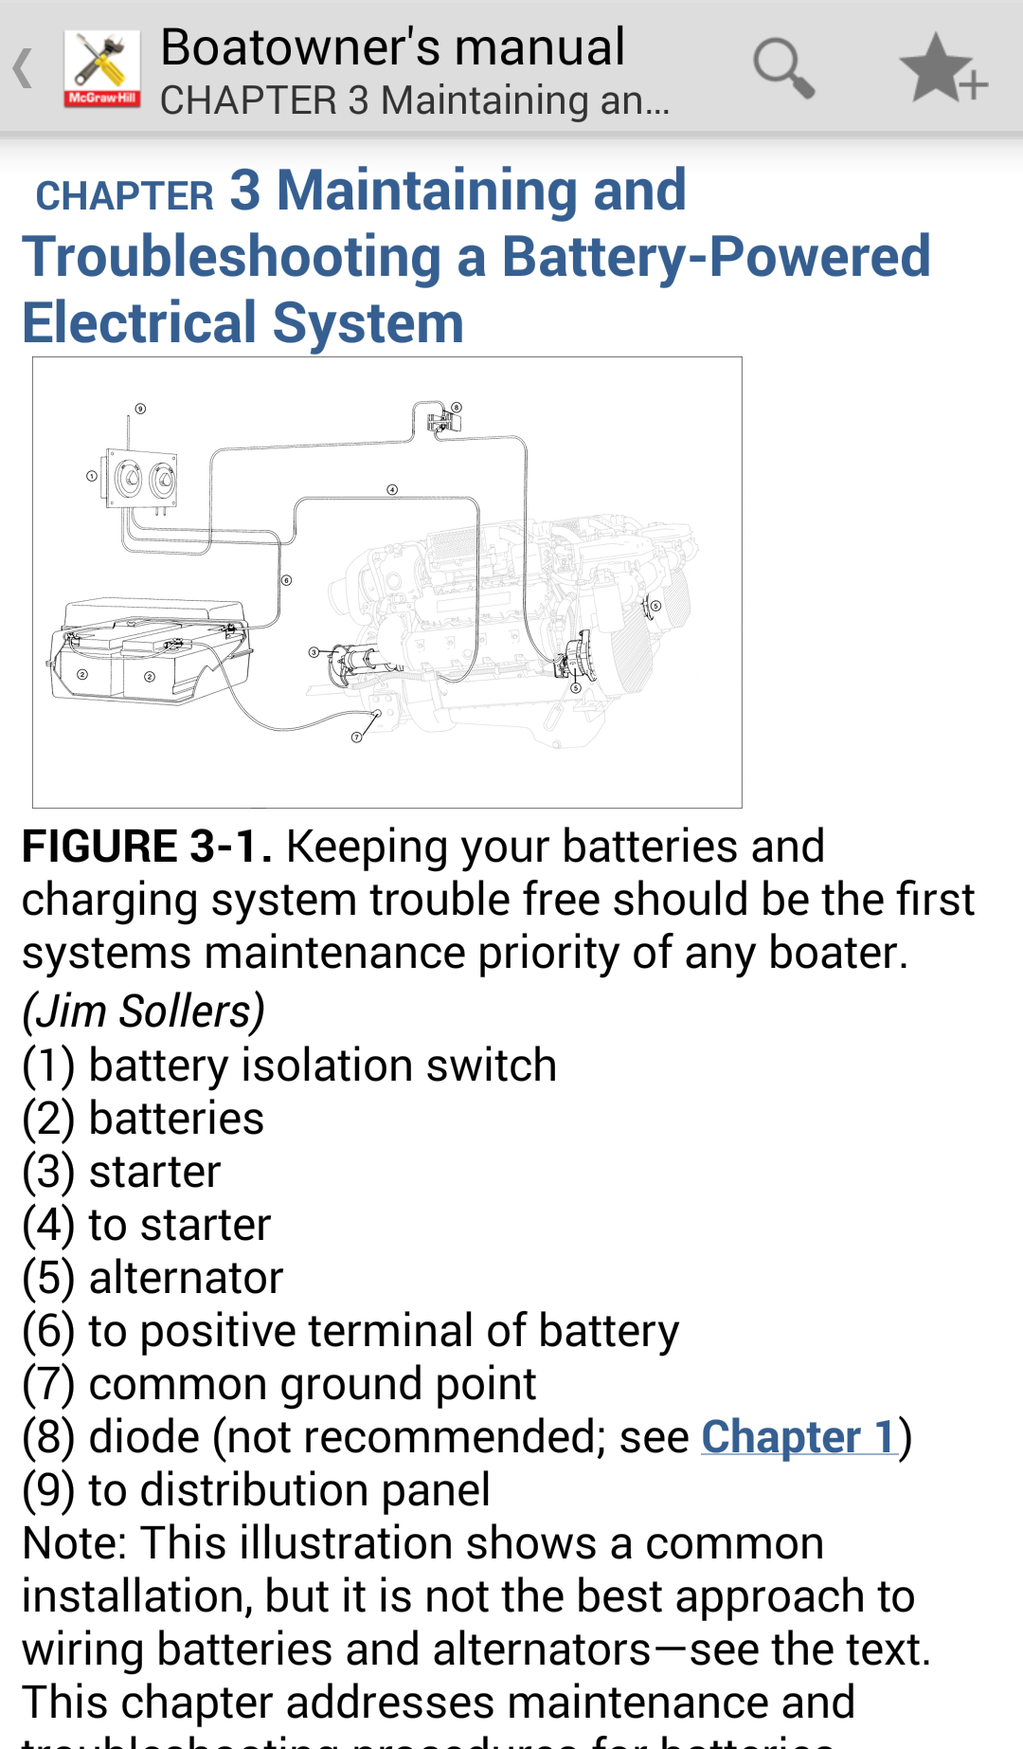 Boatowner's Mechanical and Electrical Manual Screenshot 2